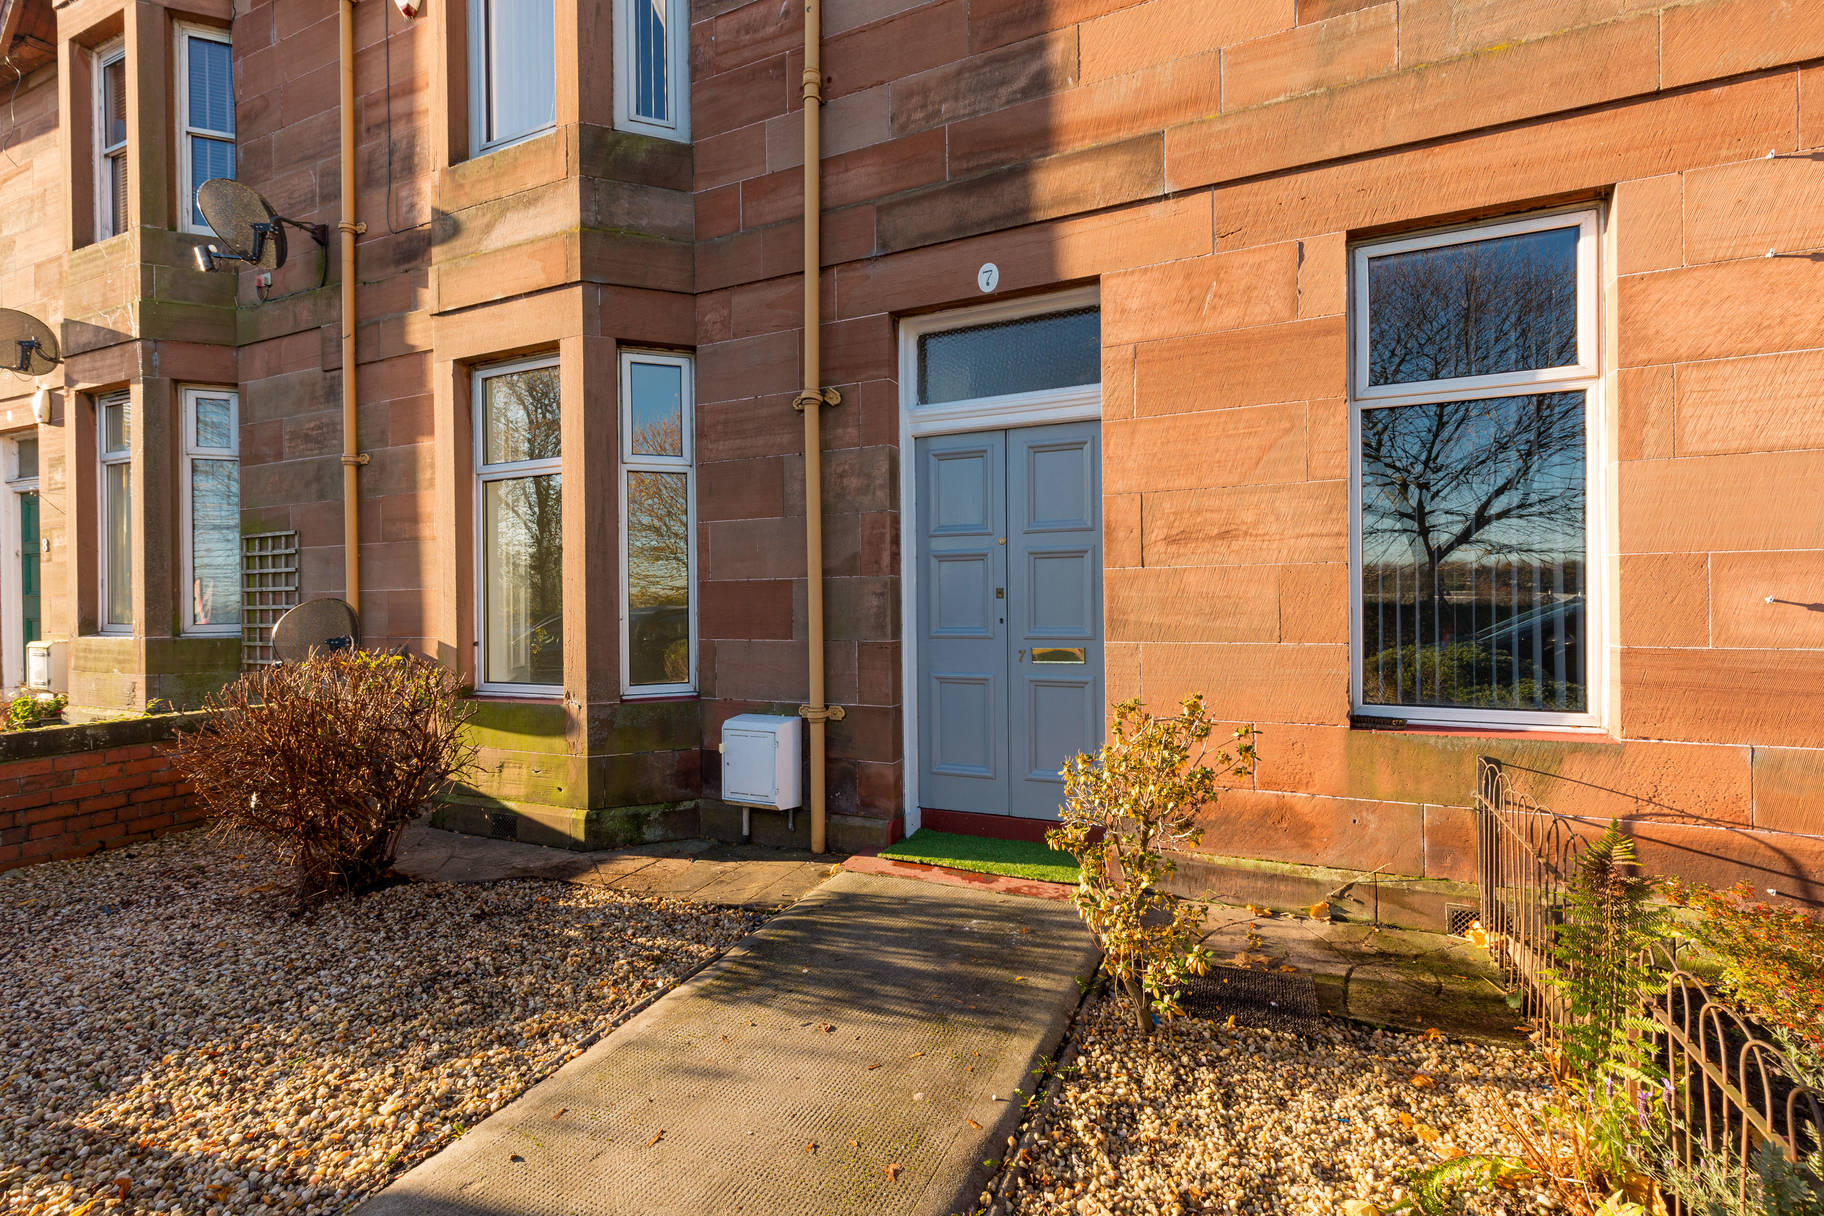 7 Monktonhall Terrace, Musselburgh, East Lothian, EH21 6ER